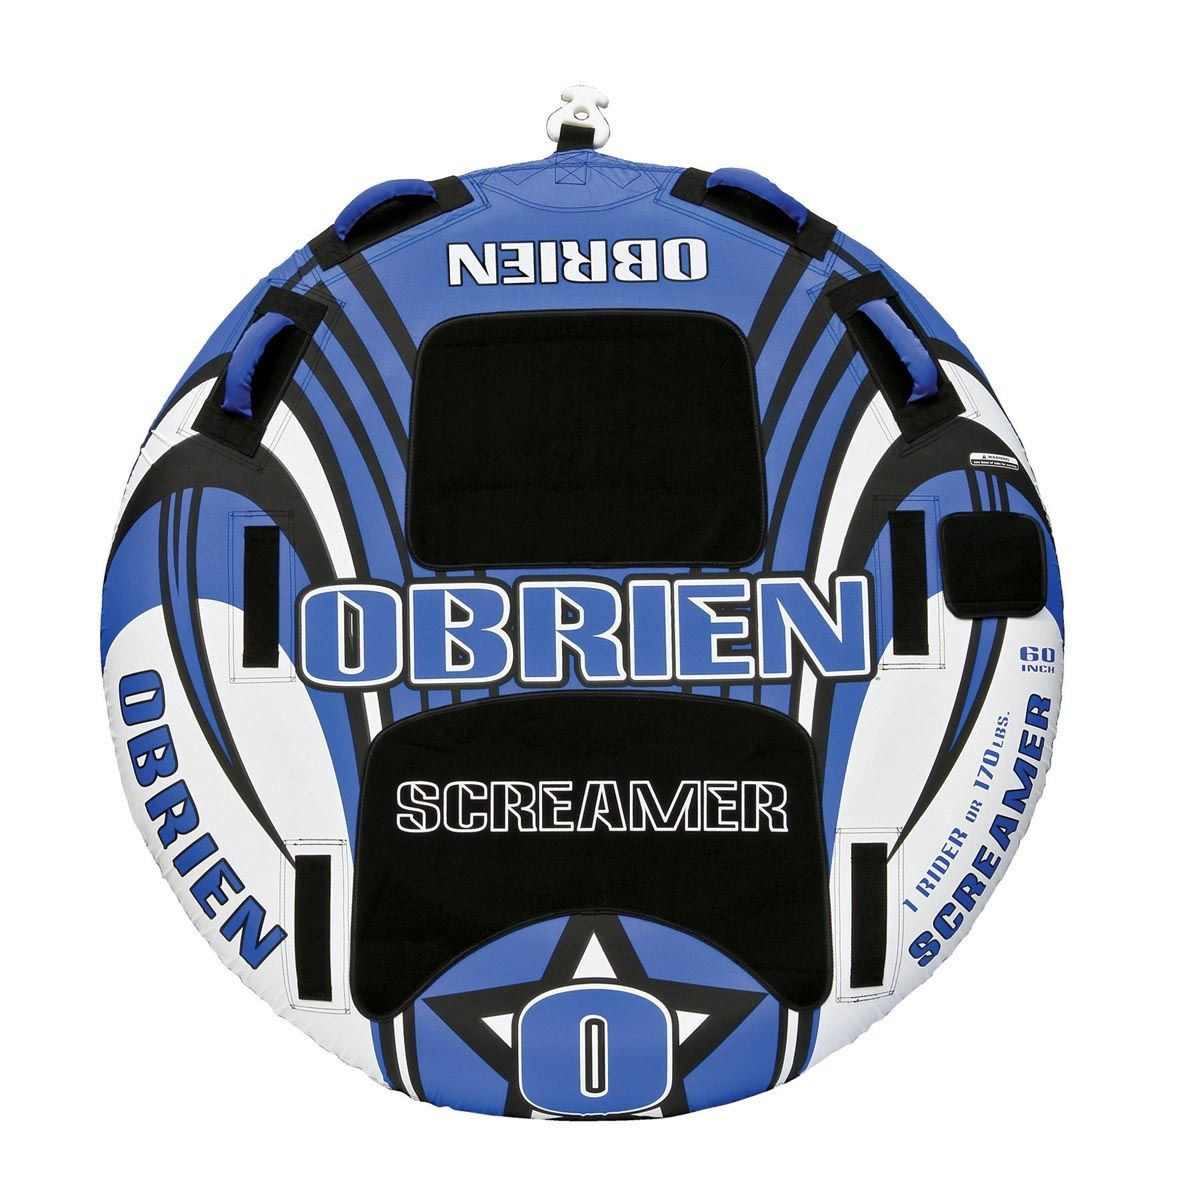 Mr Boats Airhead Tow Harness Obrien Screamer Towable